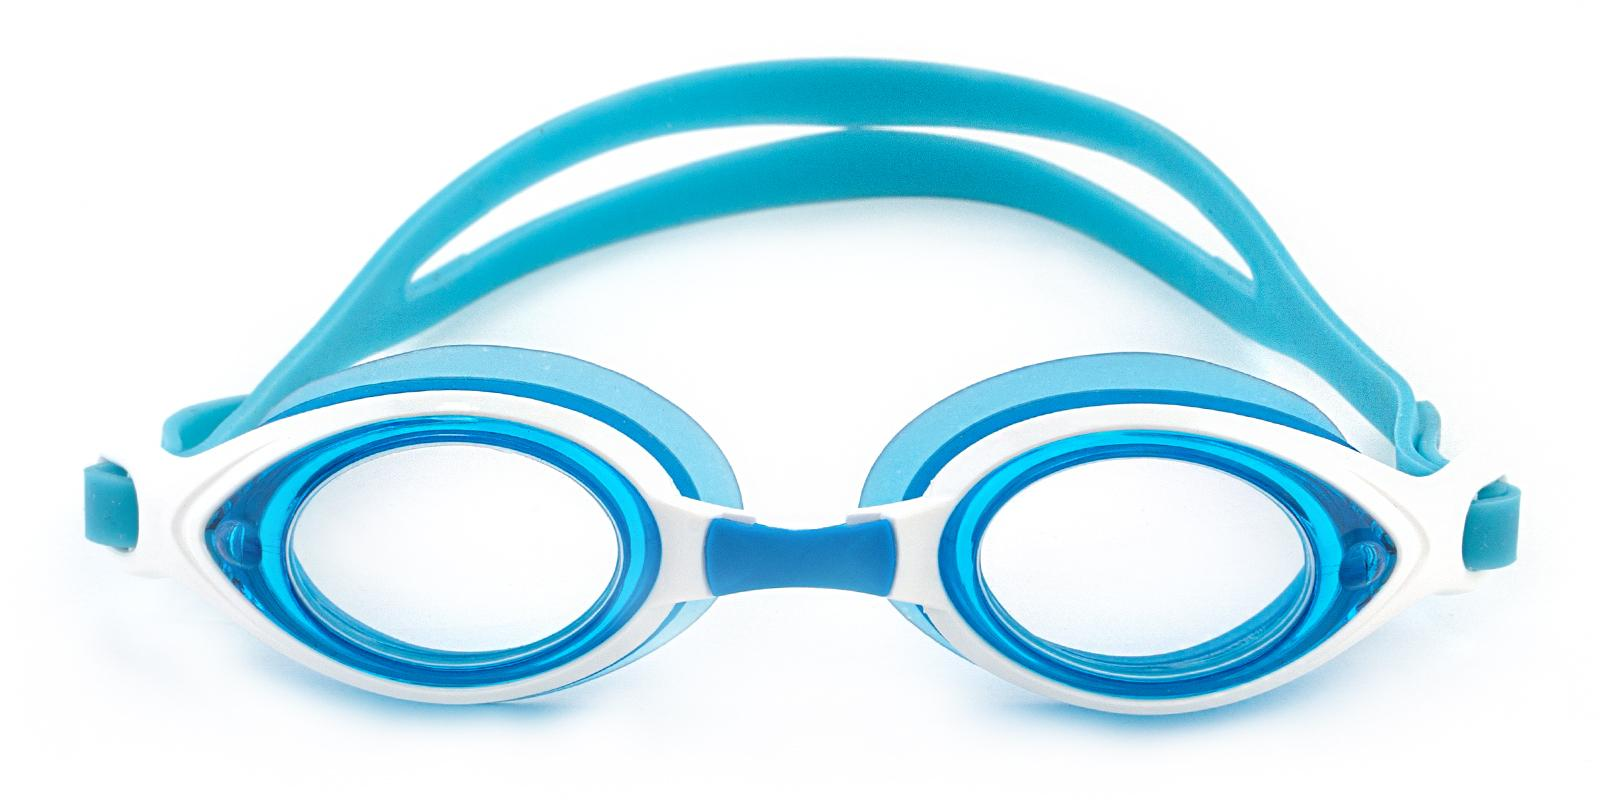 Chok Blue Plastic SportsGlasses Frames from ABBE Glasses